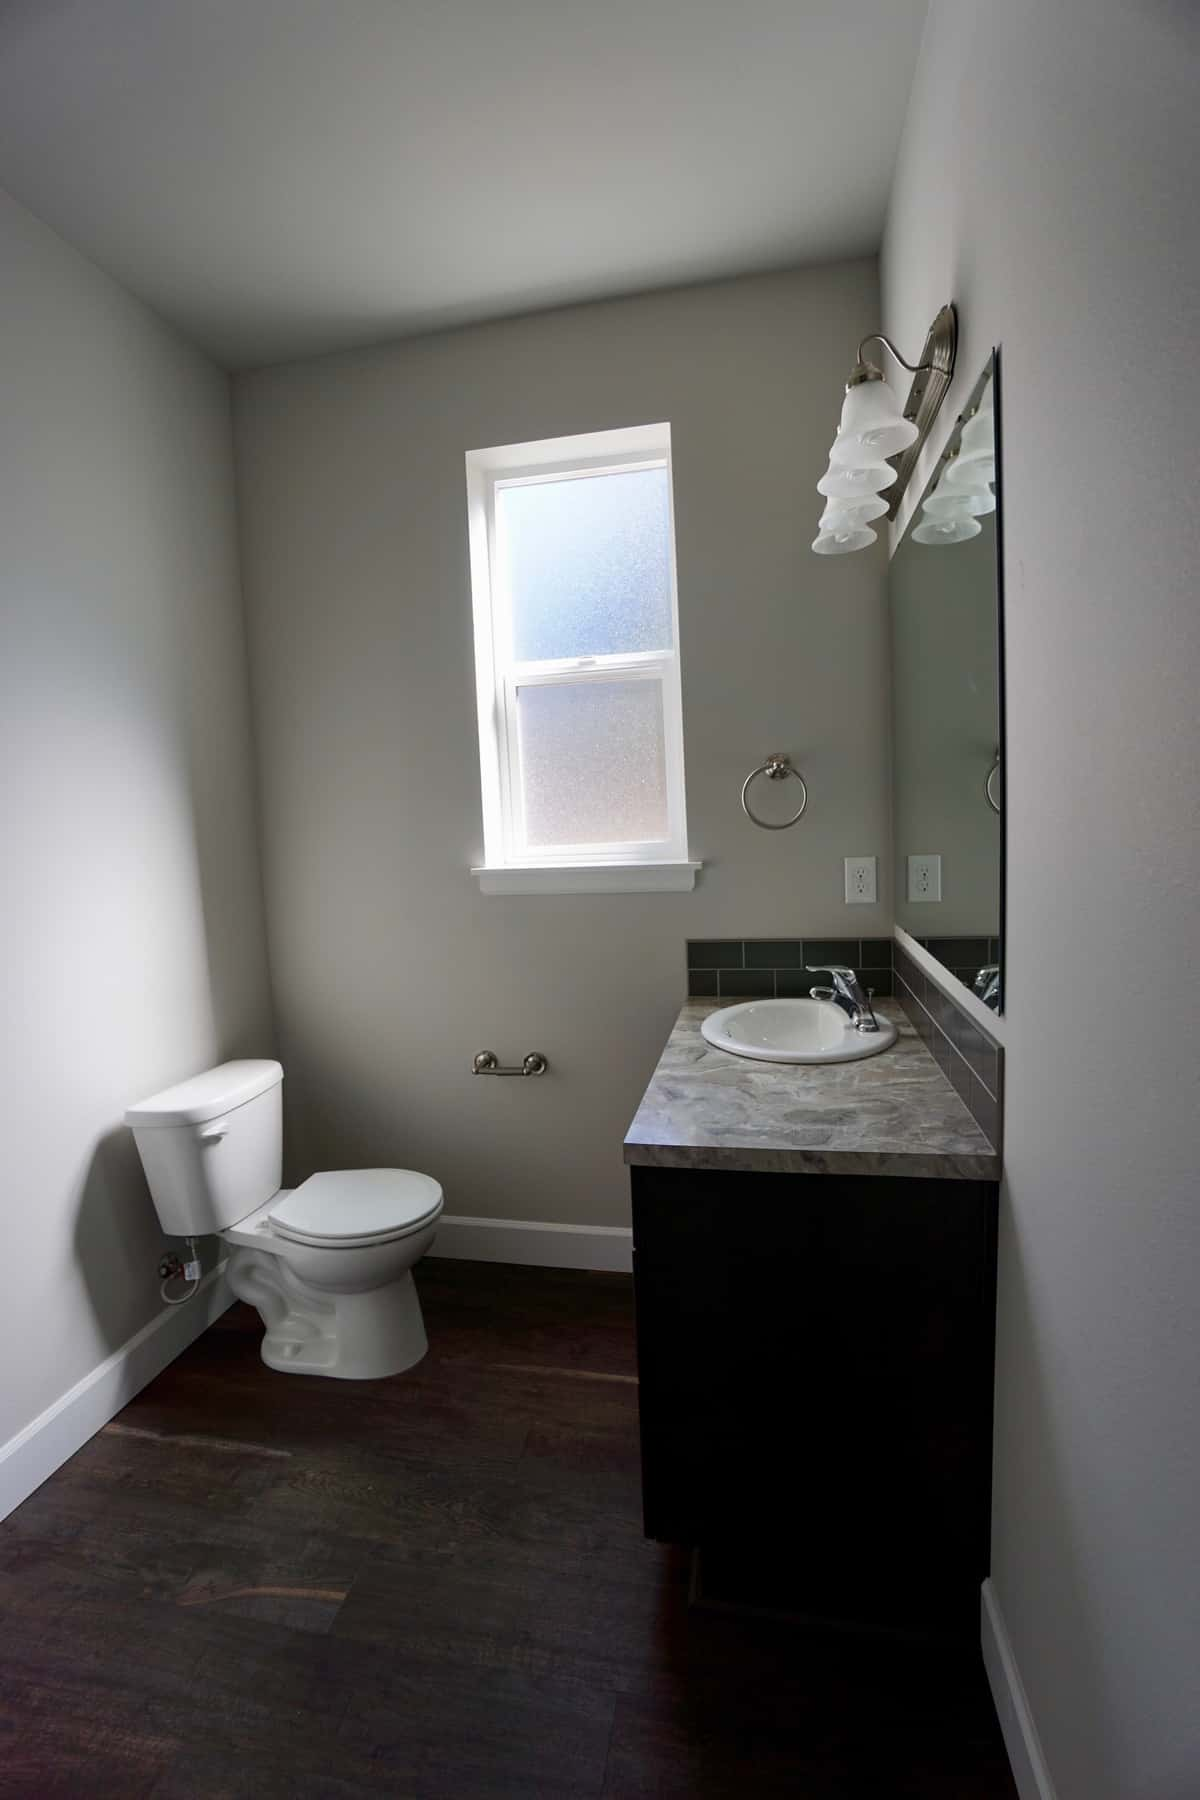 Bathroom Remodel in Puyallup, WA